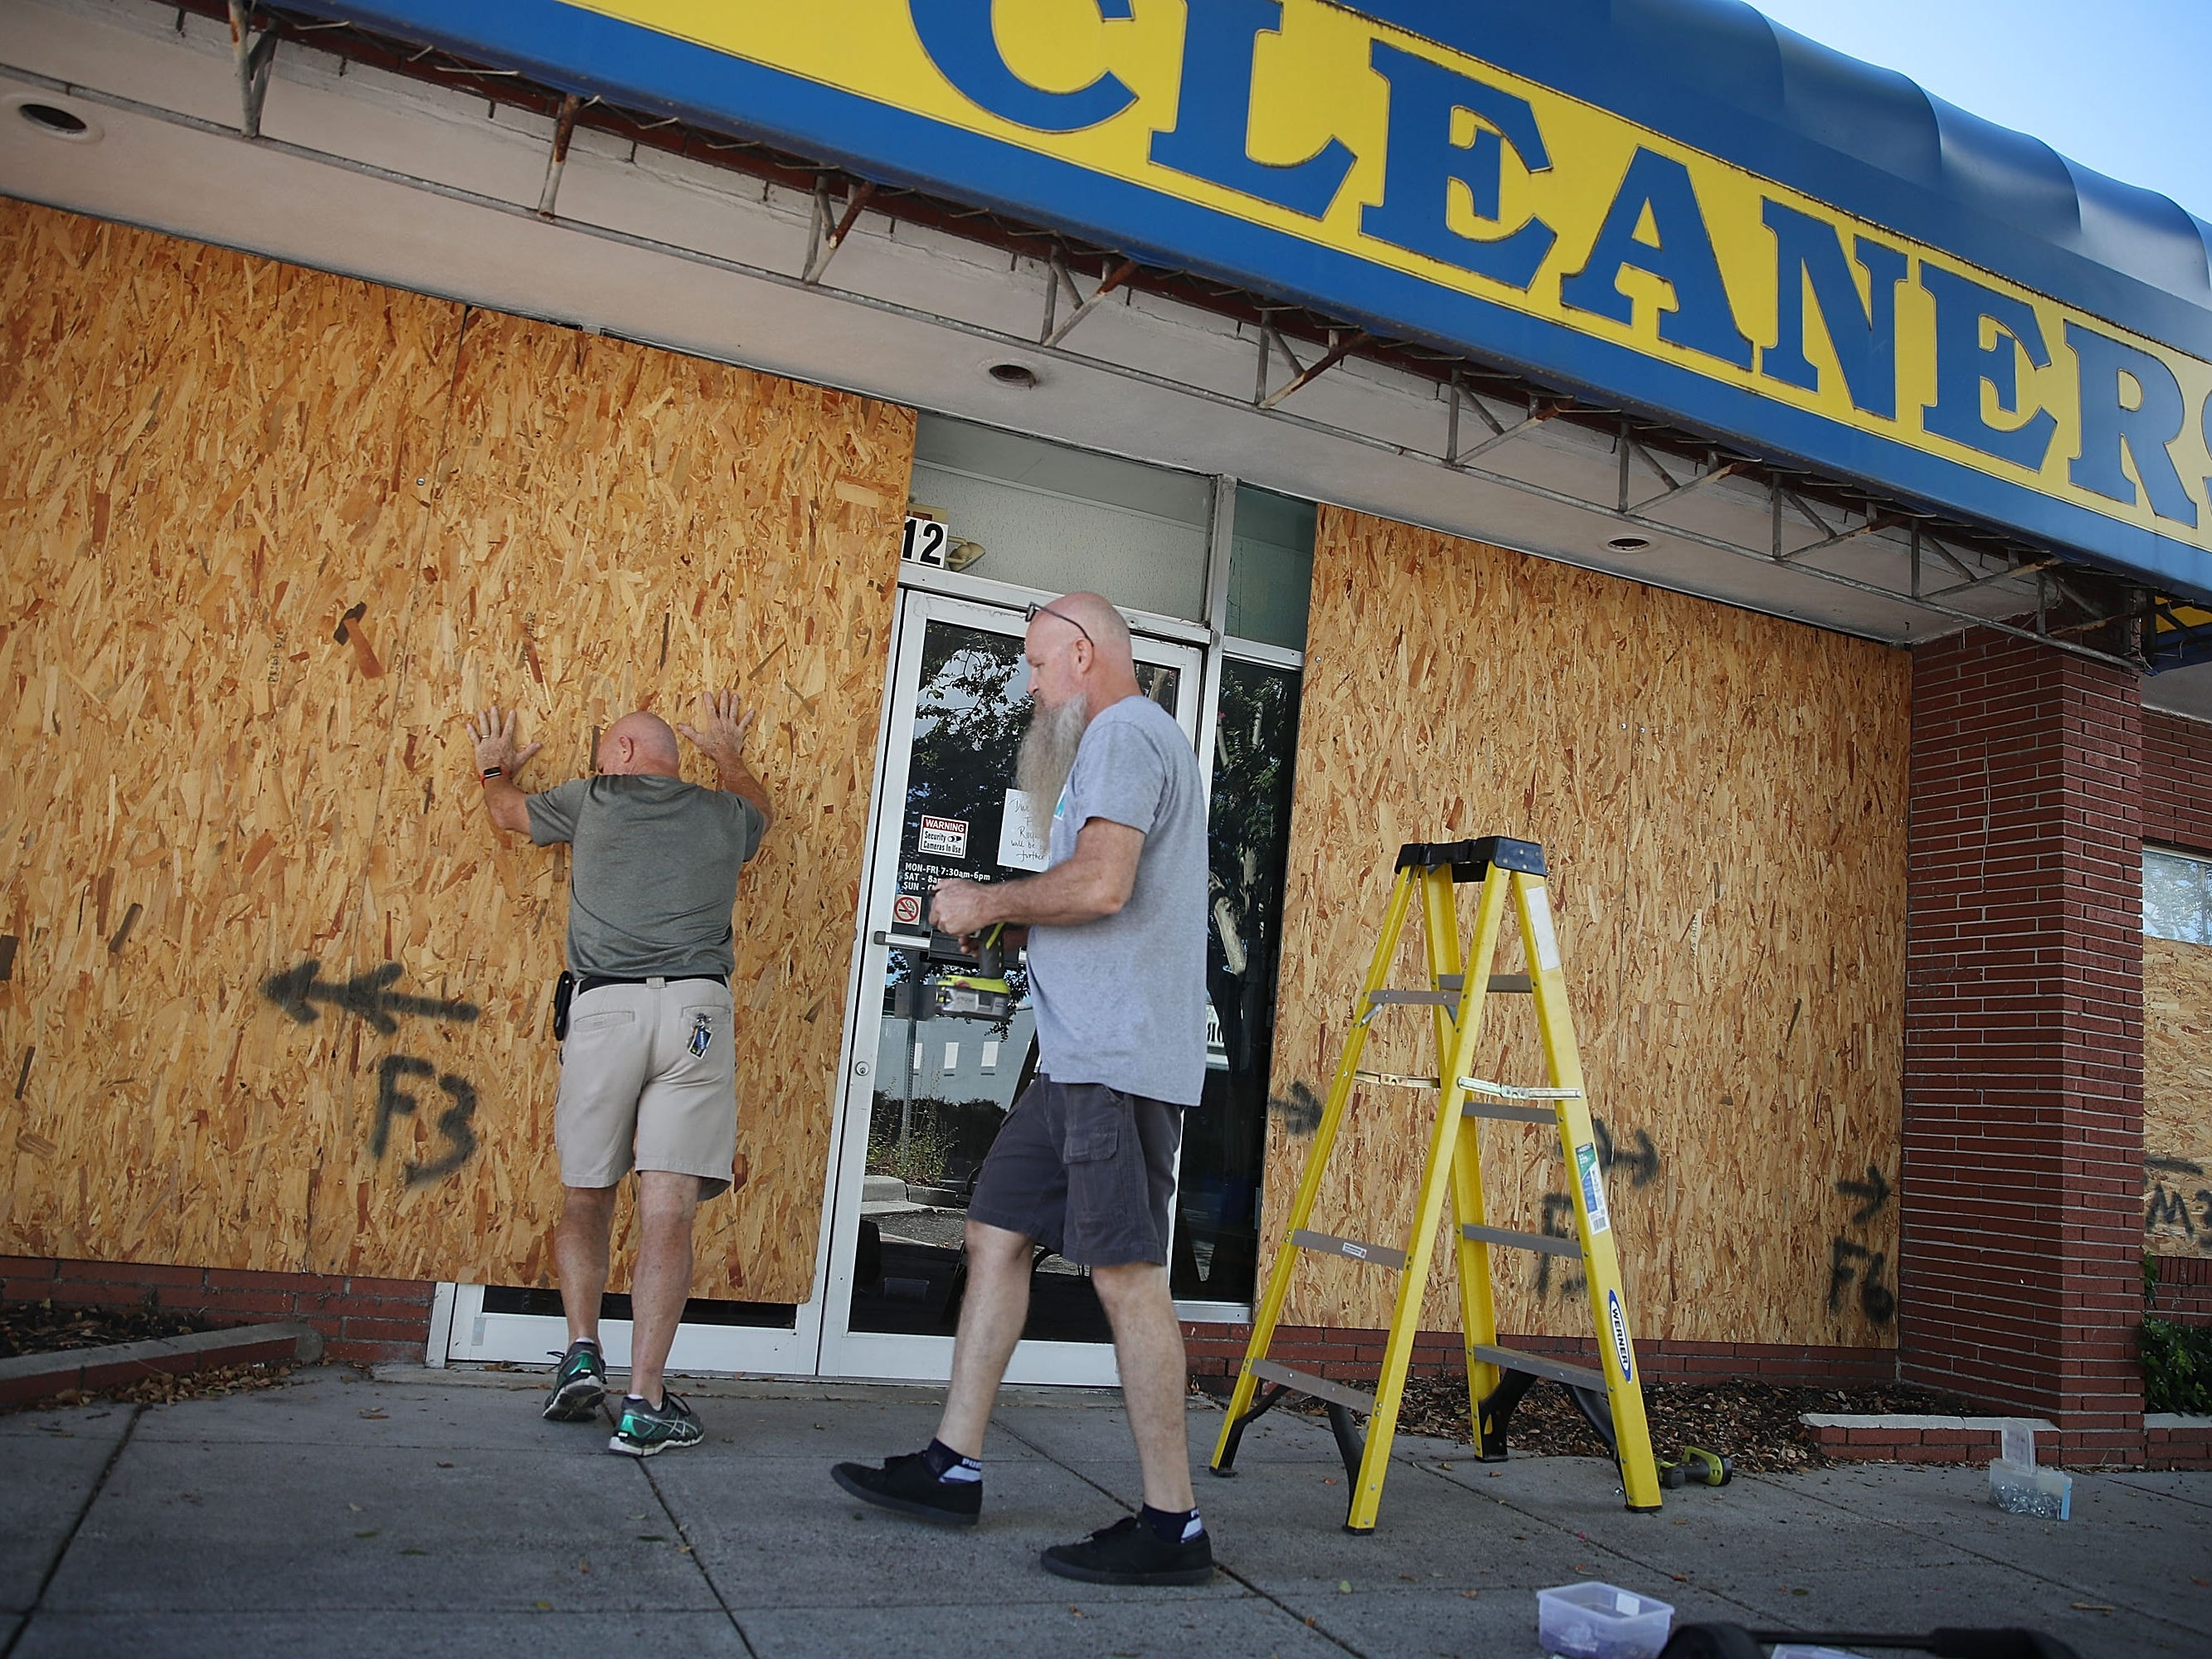 MYRTLE BEACH, SC - SEPTEMBER 11:  Michael Schwartz (L) and Jay Schwartz secure plywood over the windows of their business ahead of the arrival of Hurricane Florence on September 11, 2018 in Myrtle Beach, South Carolina. Florence is expected to make landfall by late Thursday to near Category 5 strength along the Virginia, North Carolina and South Carolina coastline.  (Photo by Joe Raedle/Getty Images) ORG XMIT: 775225768 ORIG FILE ID: 1031243328